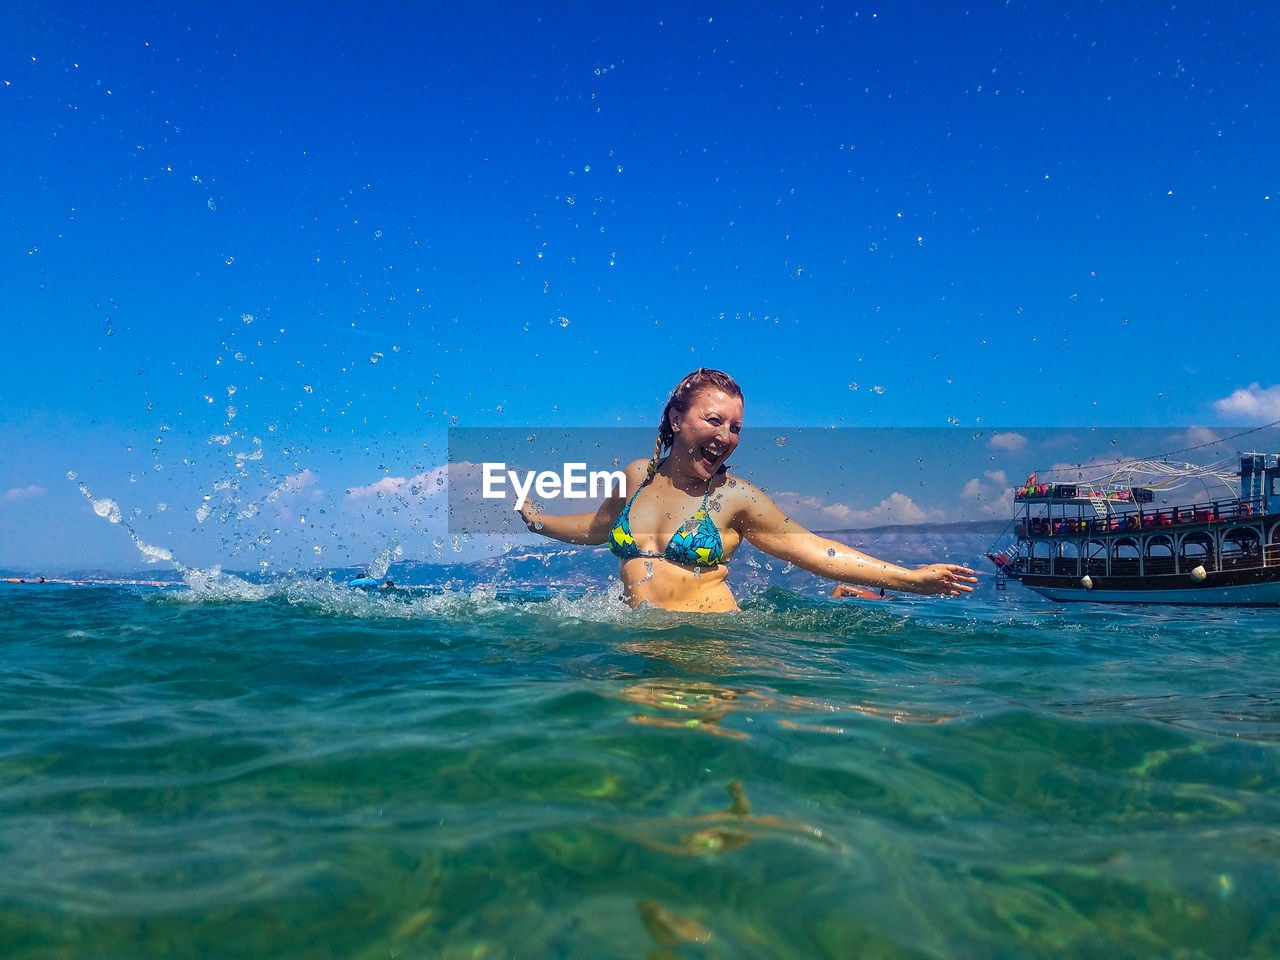 Cheerful woman swimming in sea against blue sky during sunny day